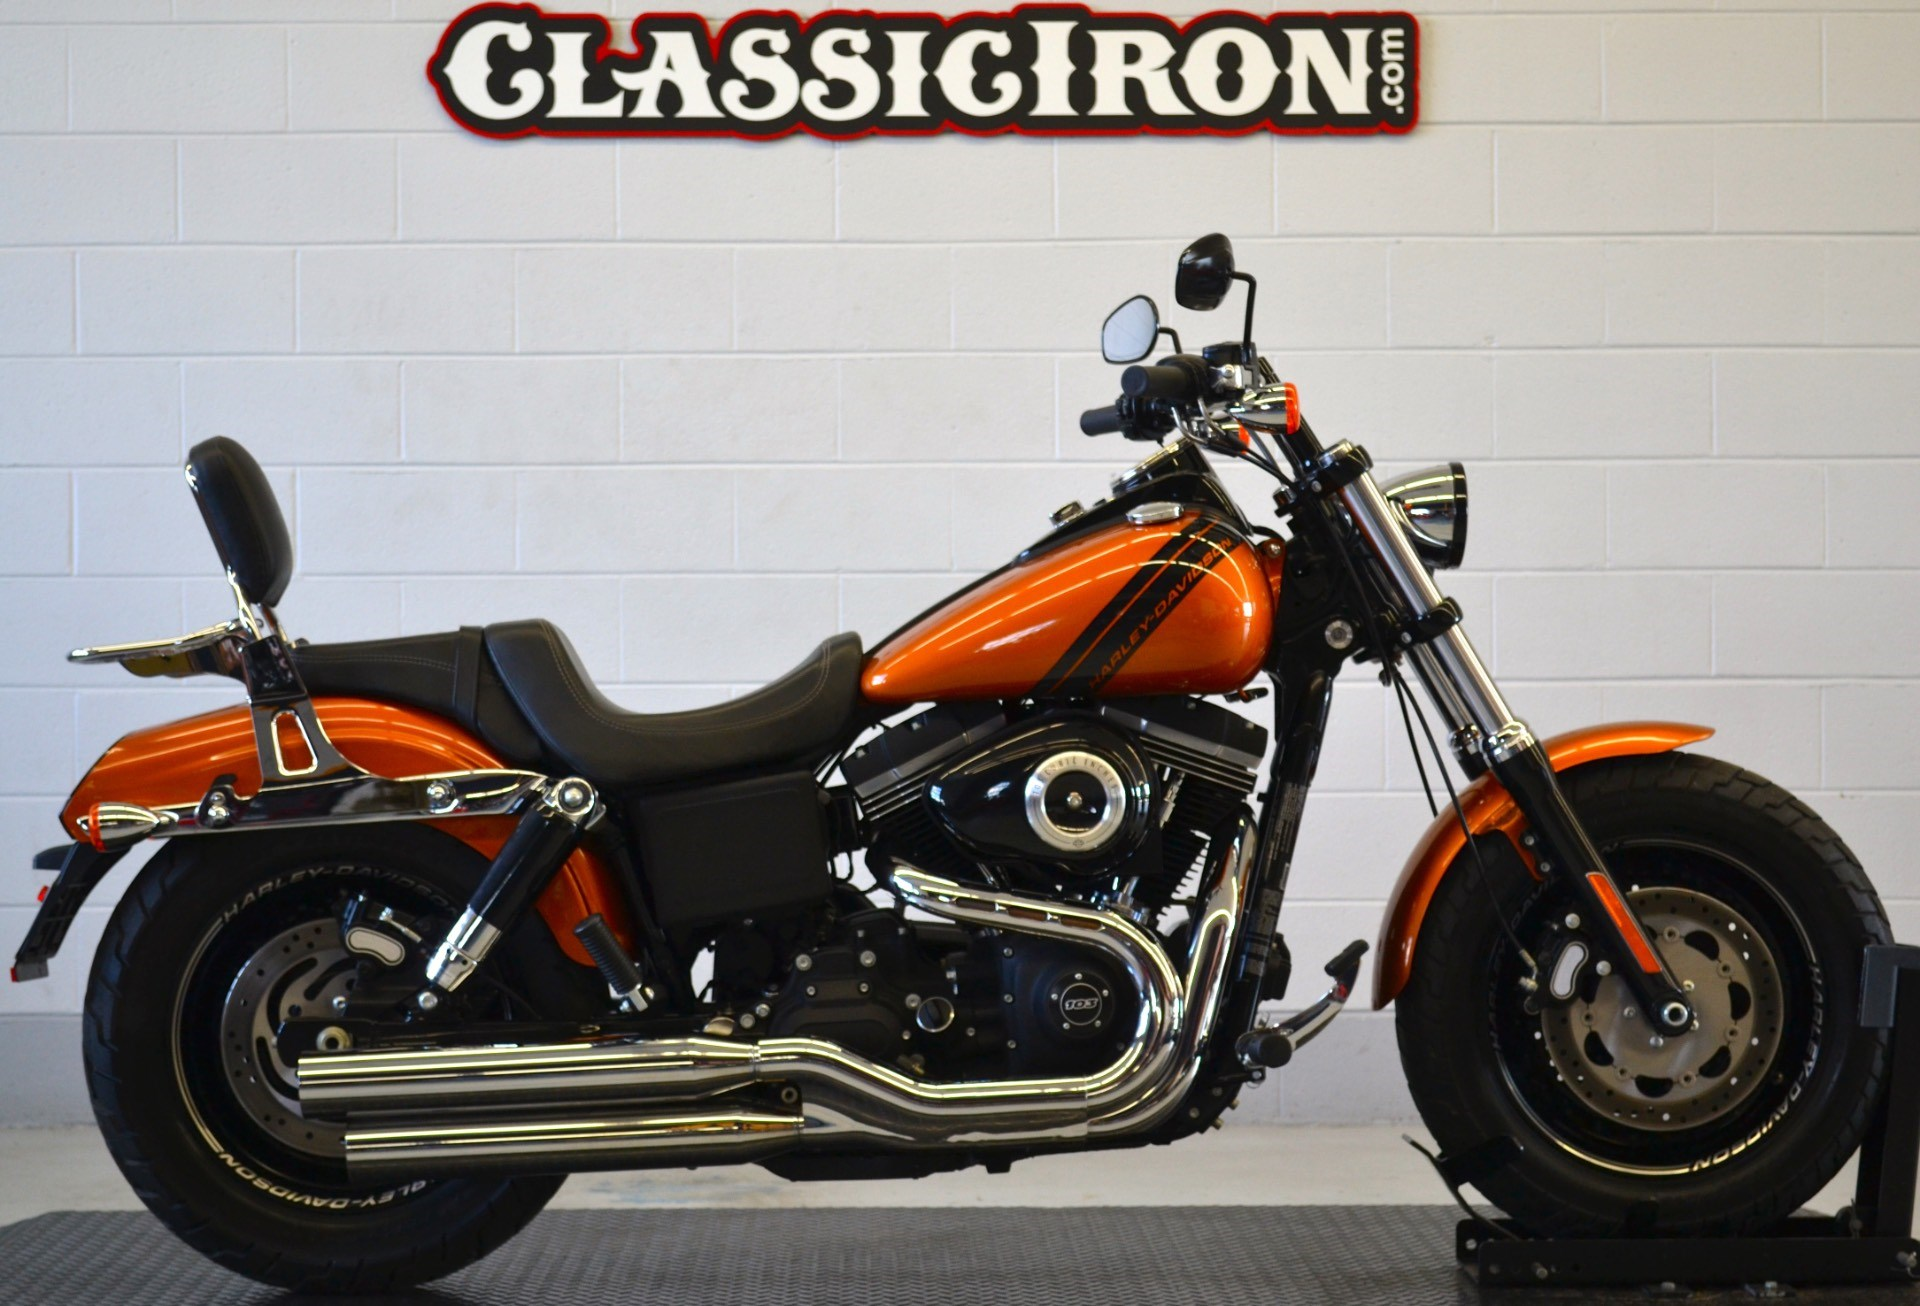 2014 harley davidson fxdf dyna fat bob amber whiskey fredericksburg virginia 685699. Black Bedroom Furniture Sets. Home Design Ideas